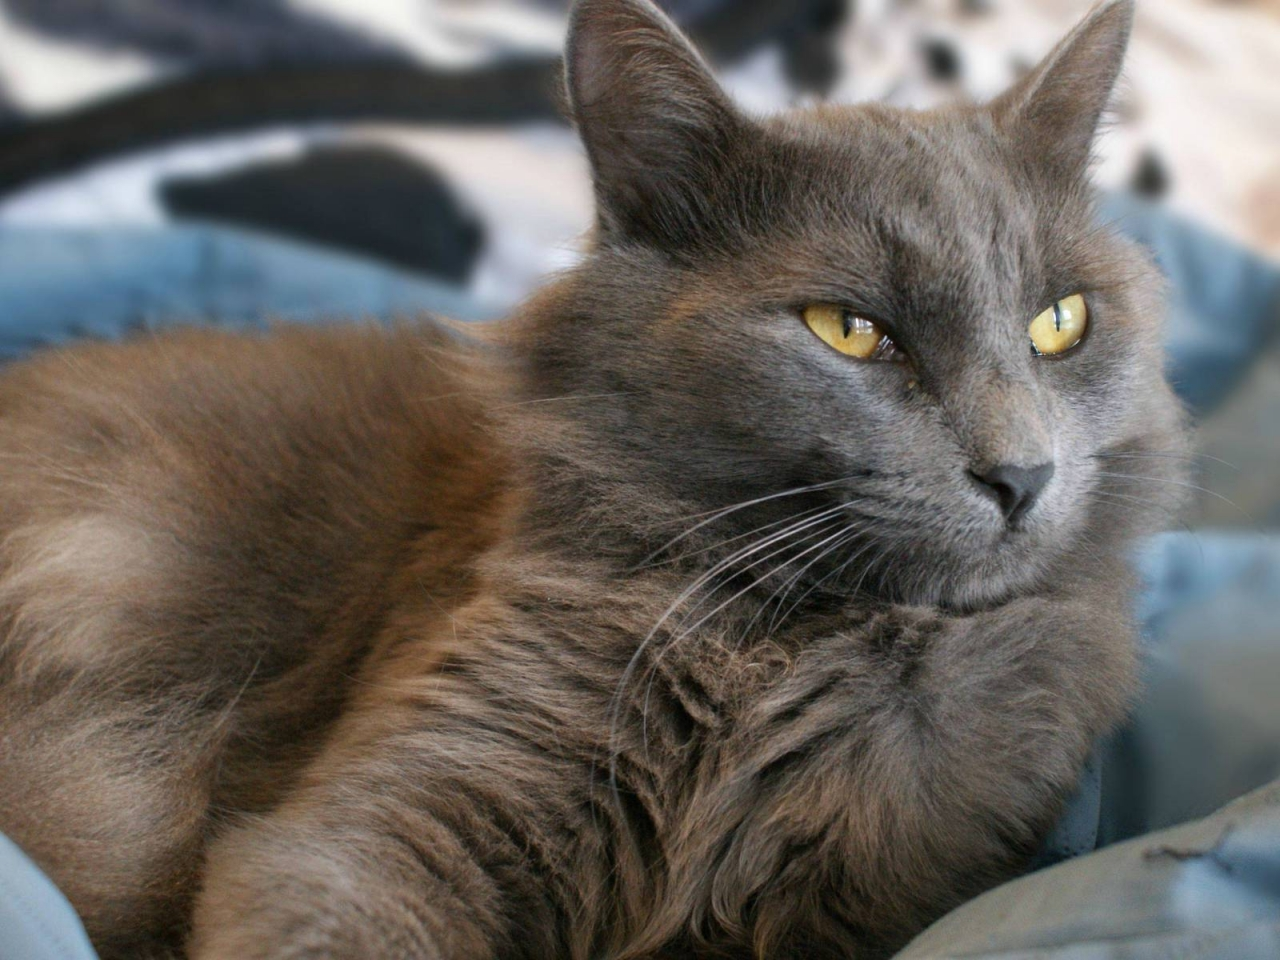 Yellow Eyes Nebelung Cat for 1280 x 960 resolution